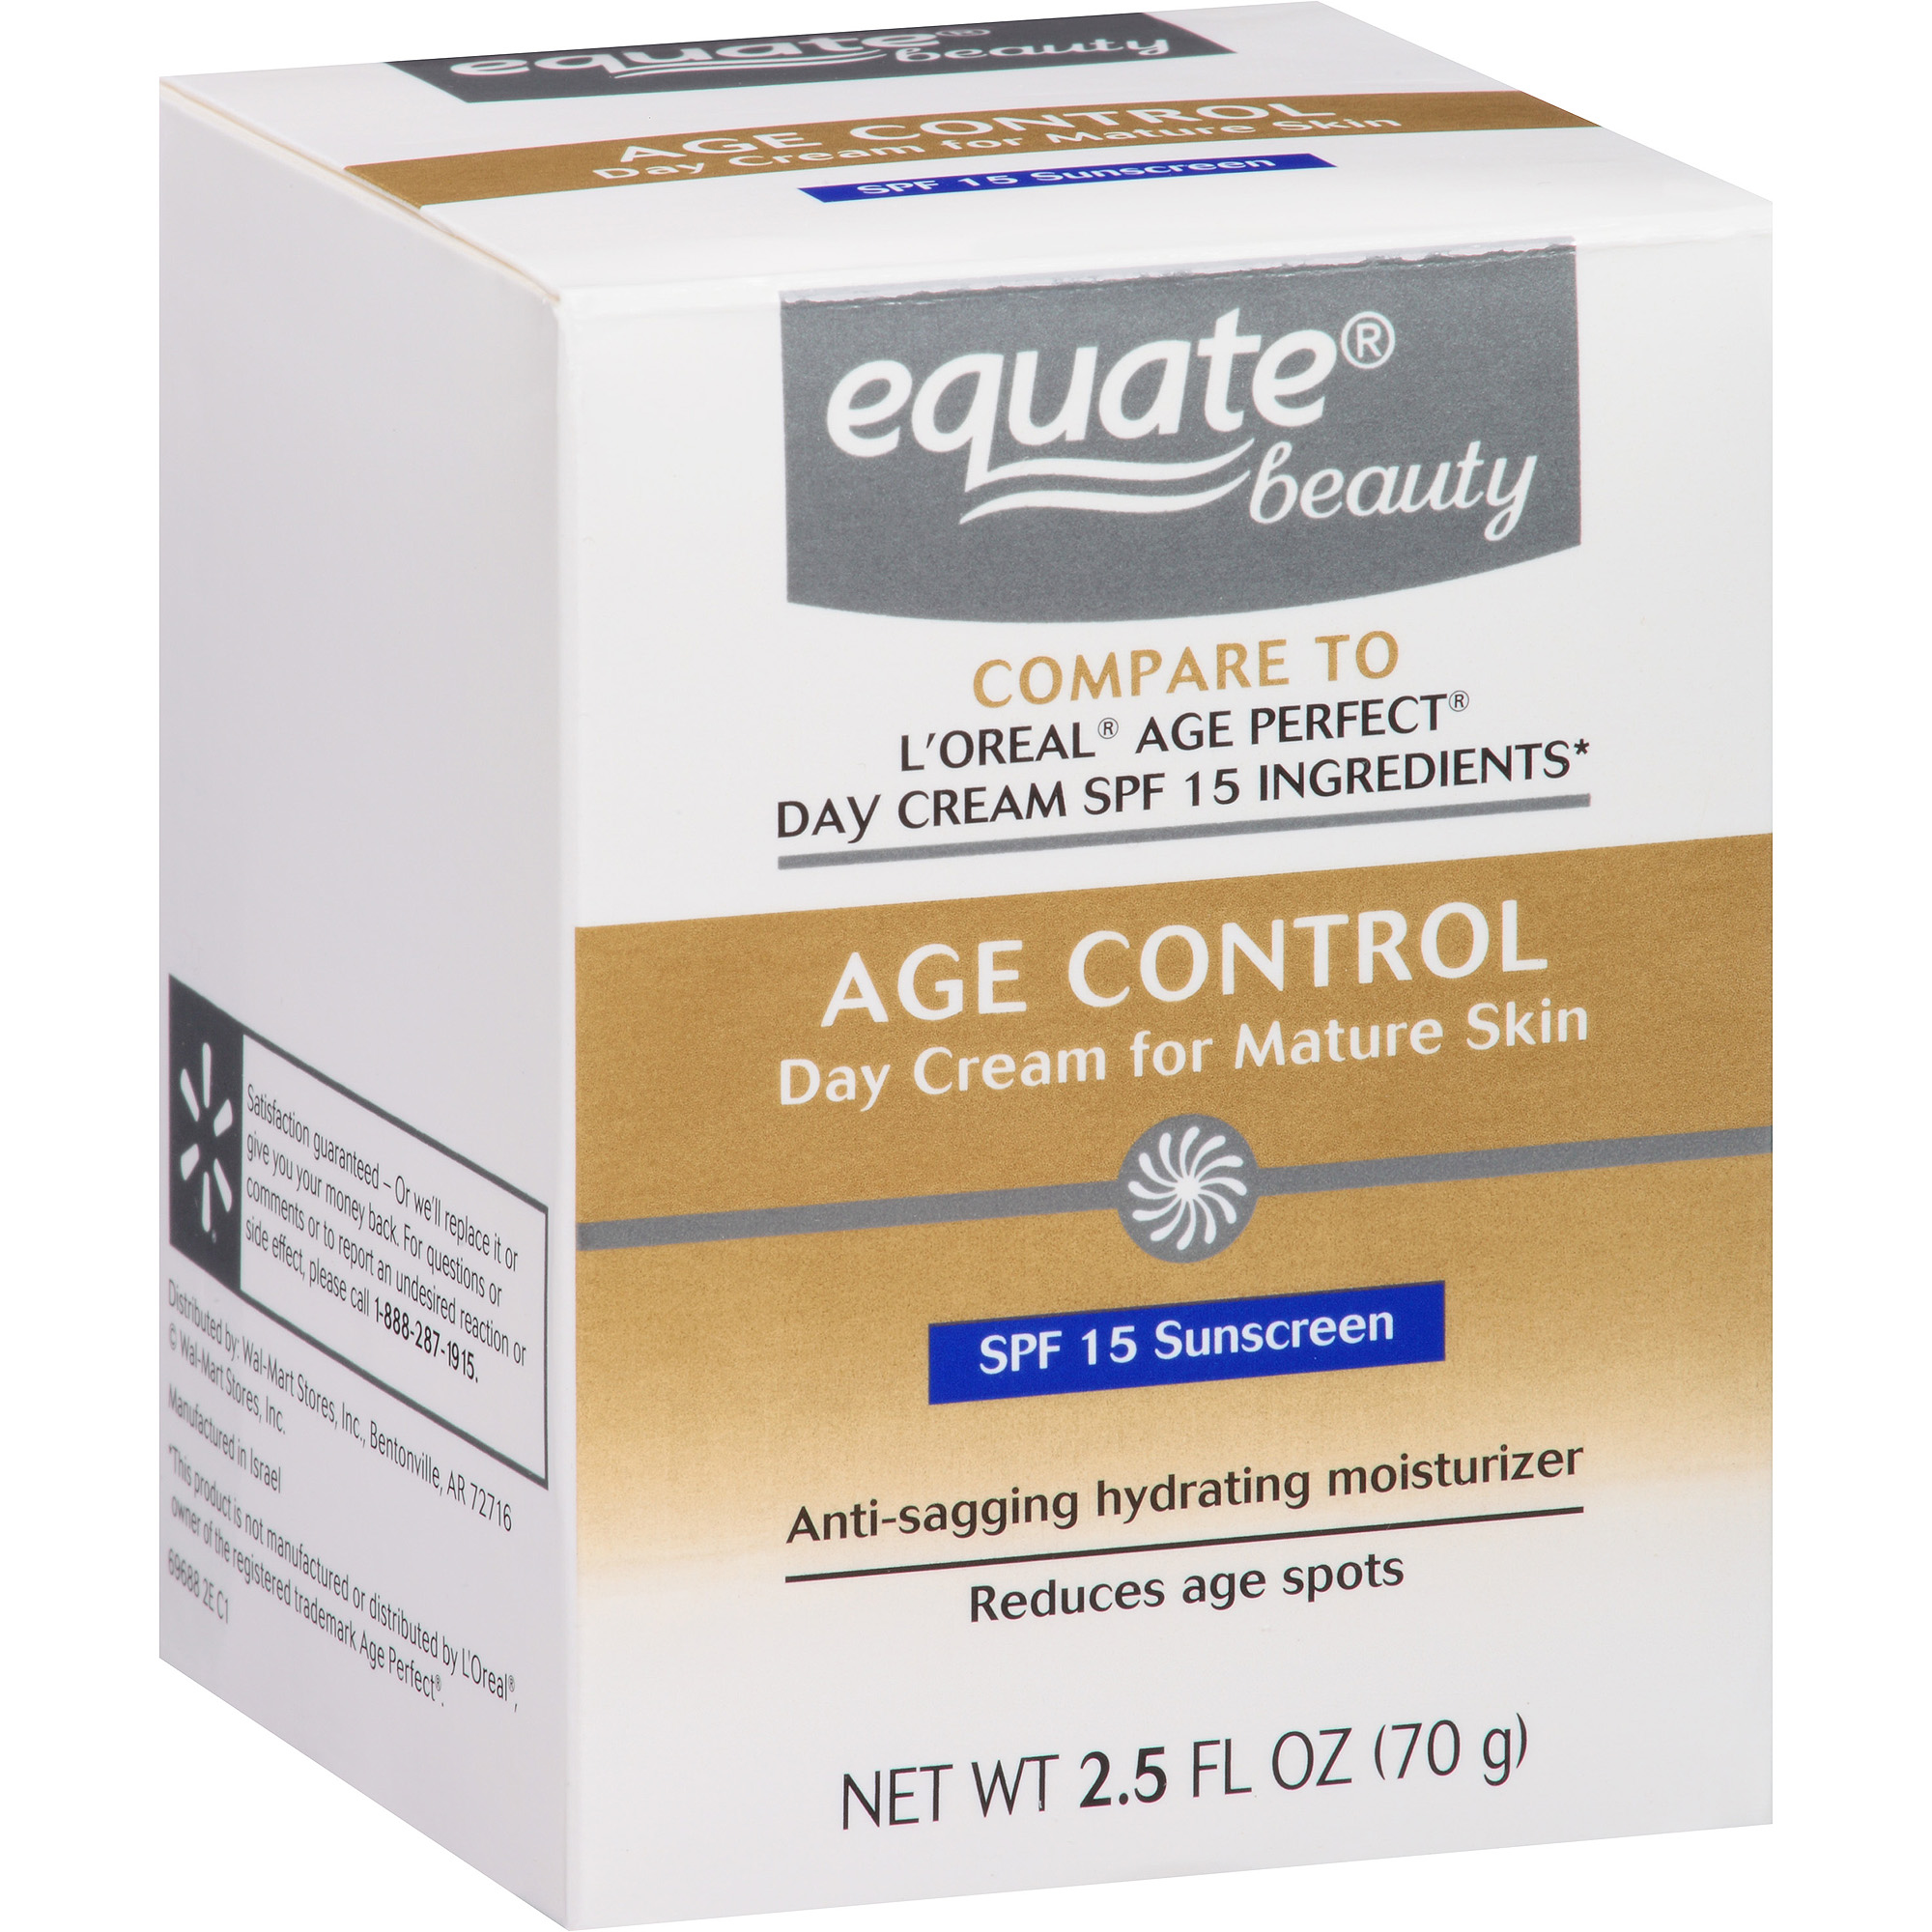 Equate Beauty Age Control Day Cream for Mature Skin, 2.5 fl oz